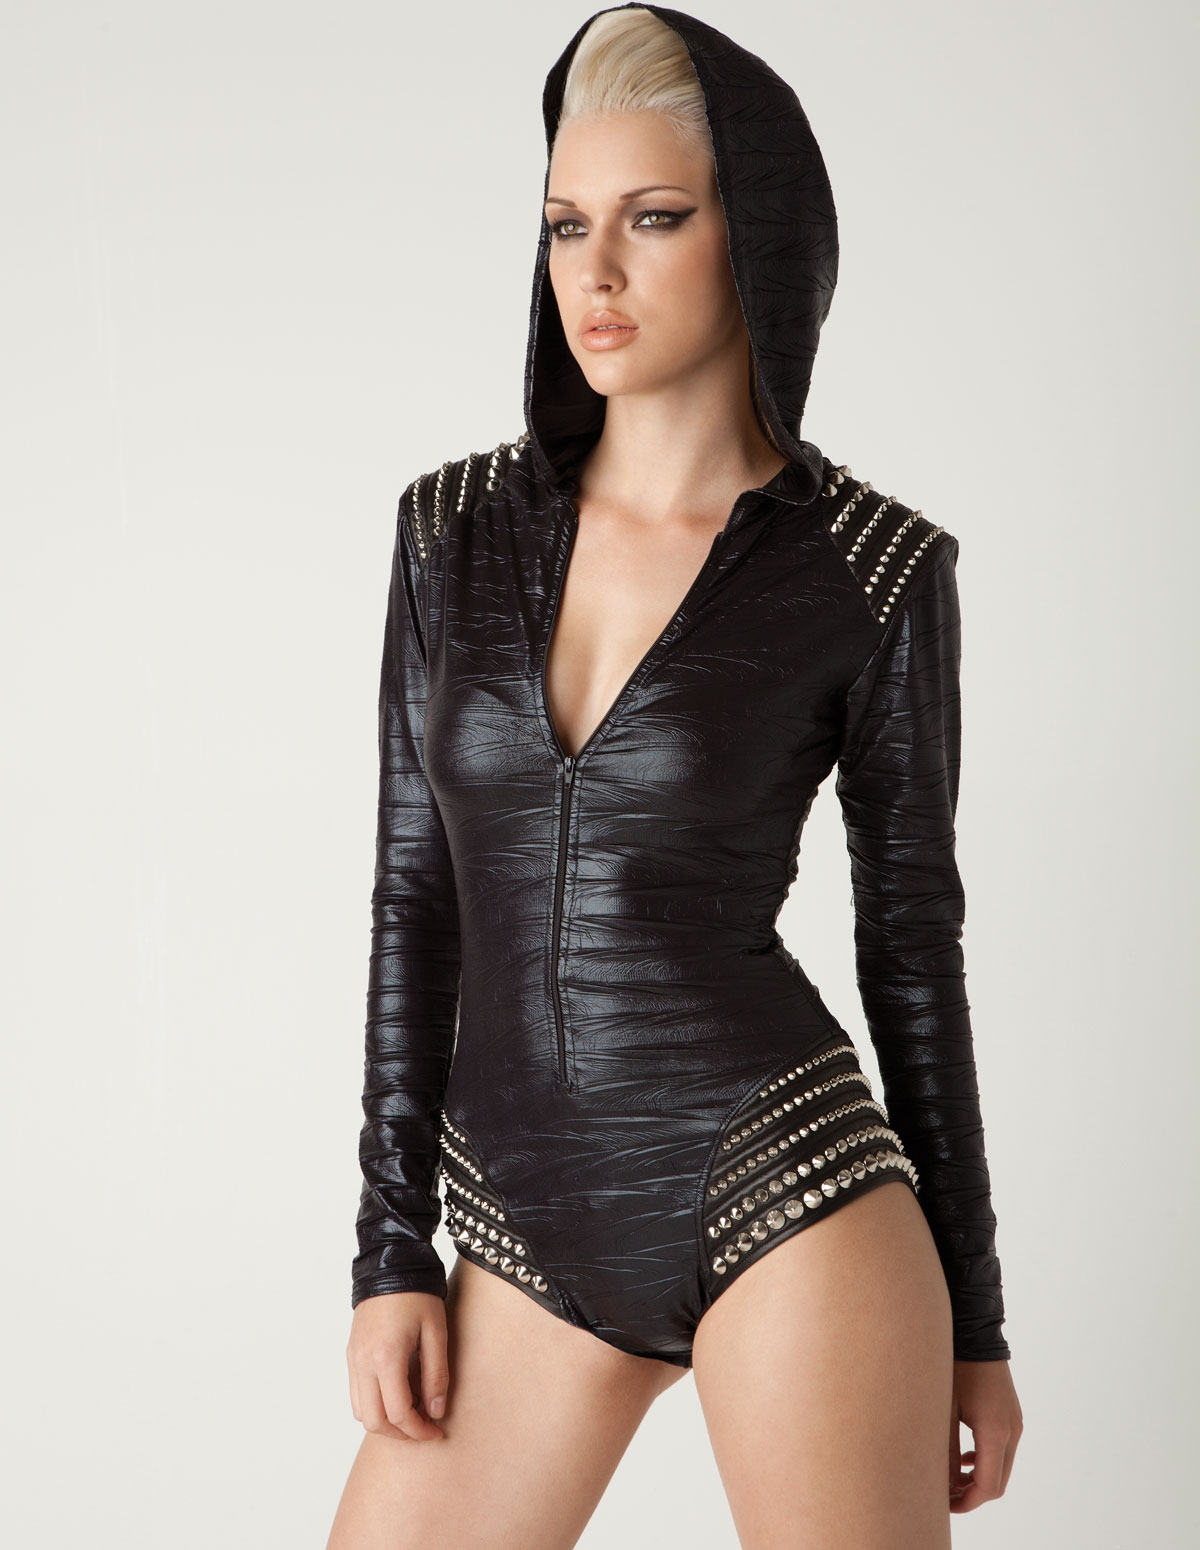 Bitchin Bodysuit